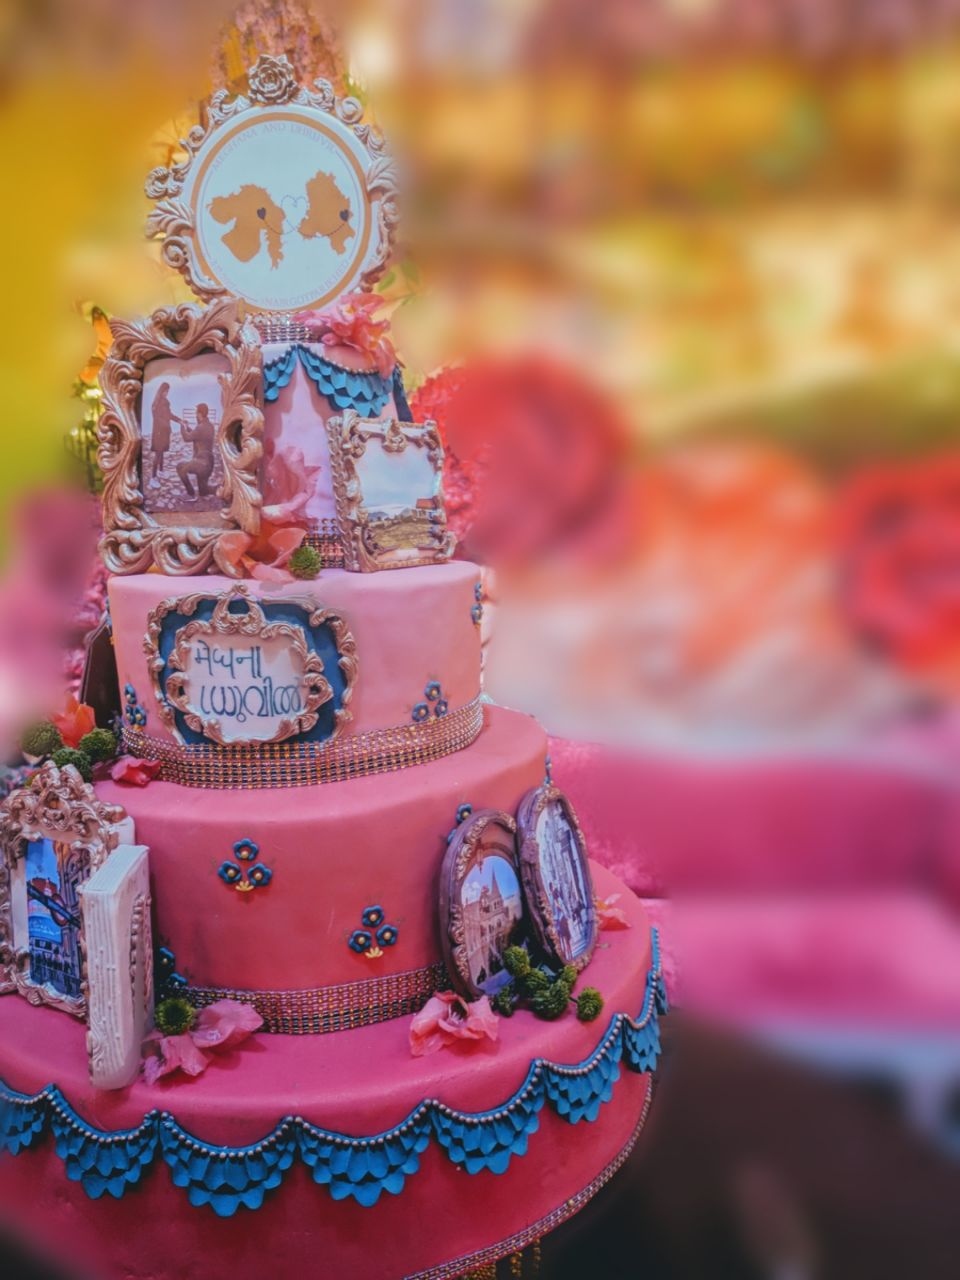 Love Story Cake by Shelly Arora | Pink and Blue Cake| Function Mania | THIS GURGAON BASED CAKE DESIGNER MAKES WEDDING CAKE AN EDIBLE WORK OF ART!